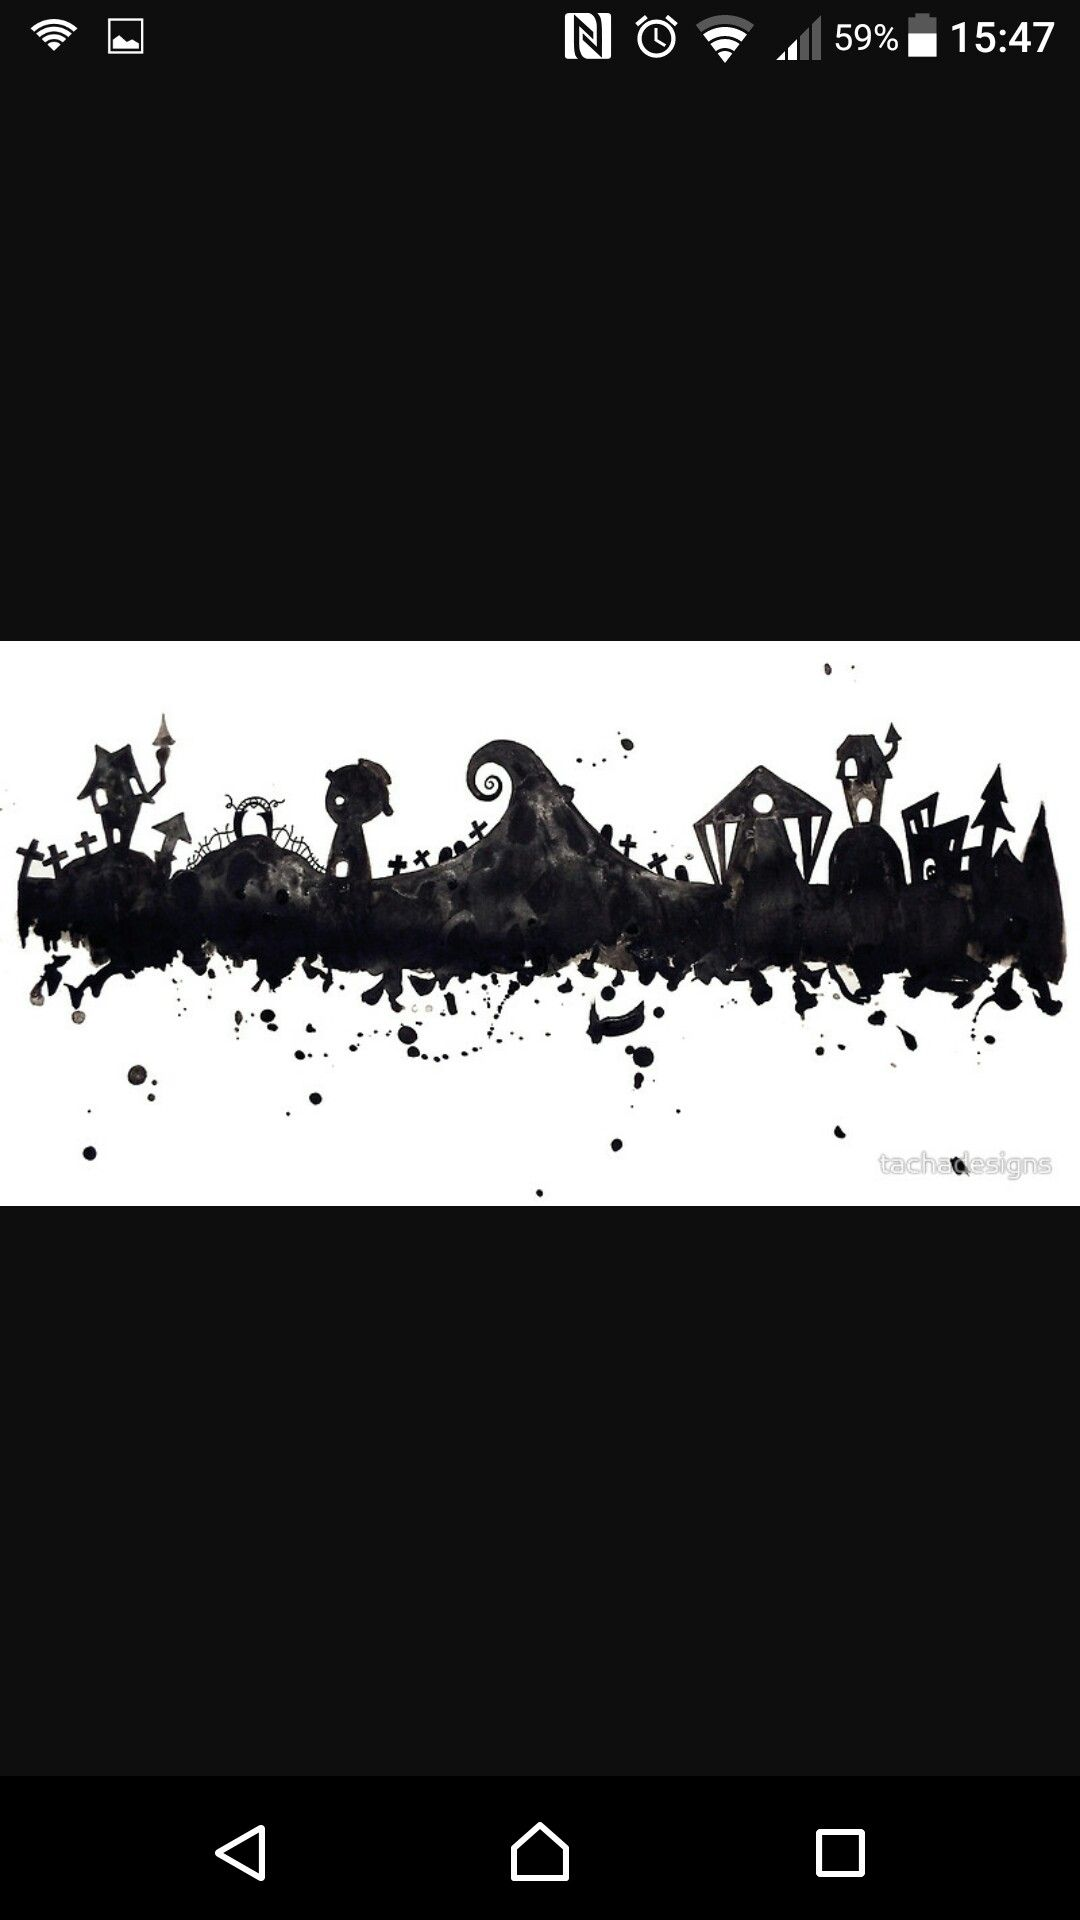 Pin by annika newton on nightmare before Christmas makes | Pinterest